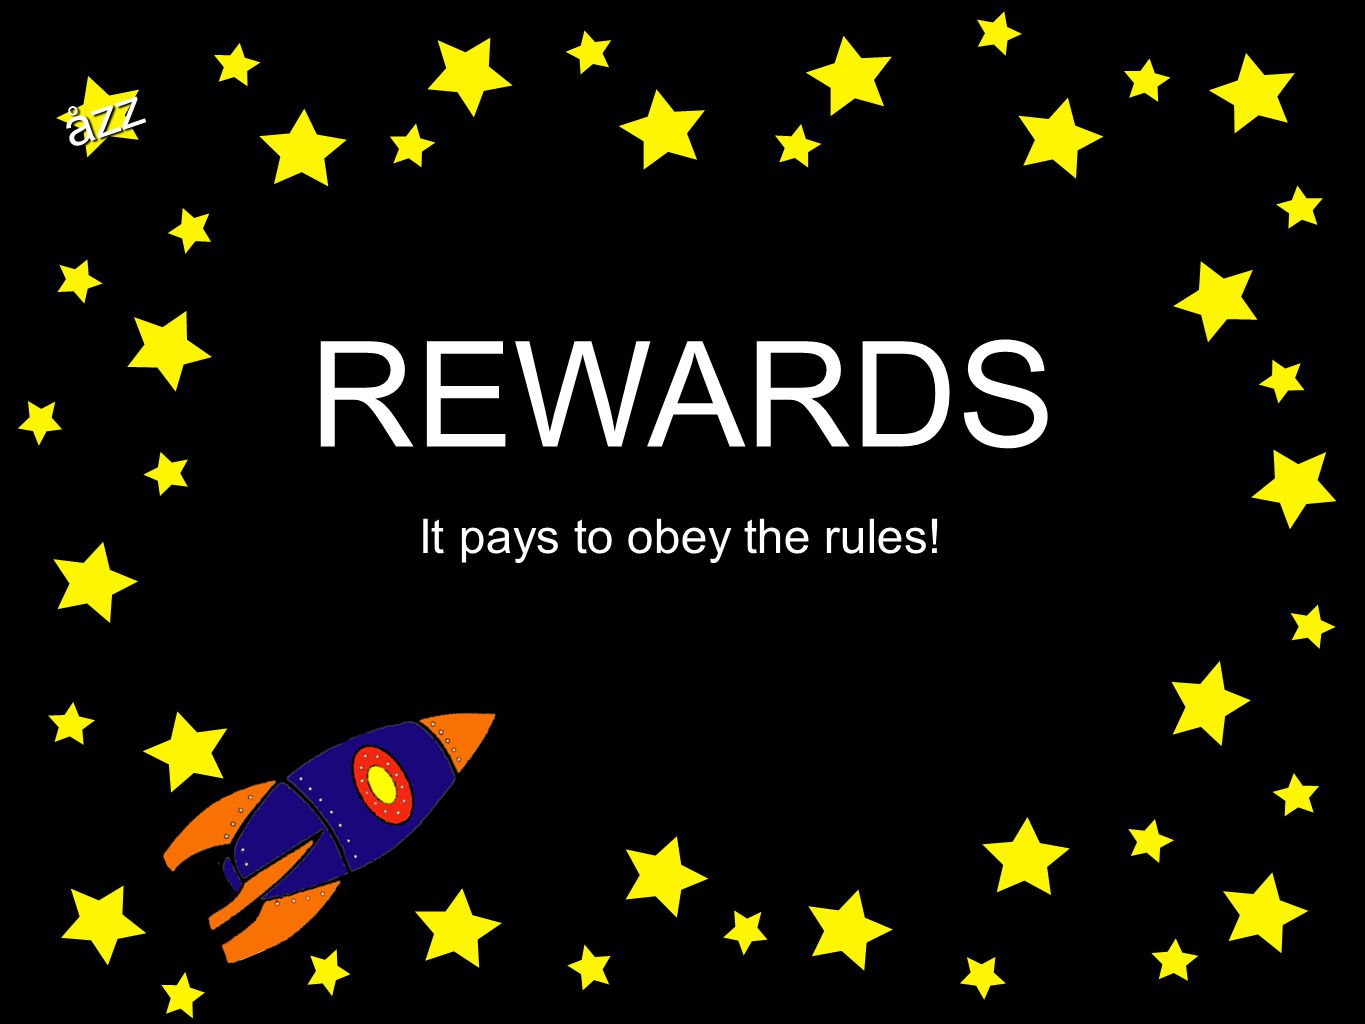 åzz REWARDS It pays to obey the rules!